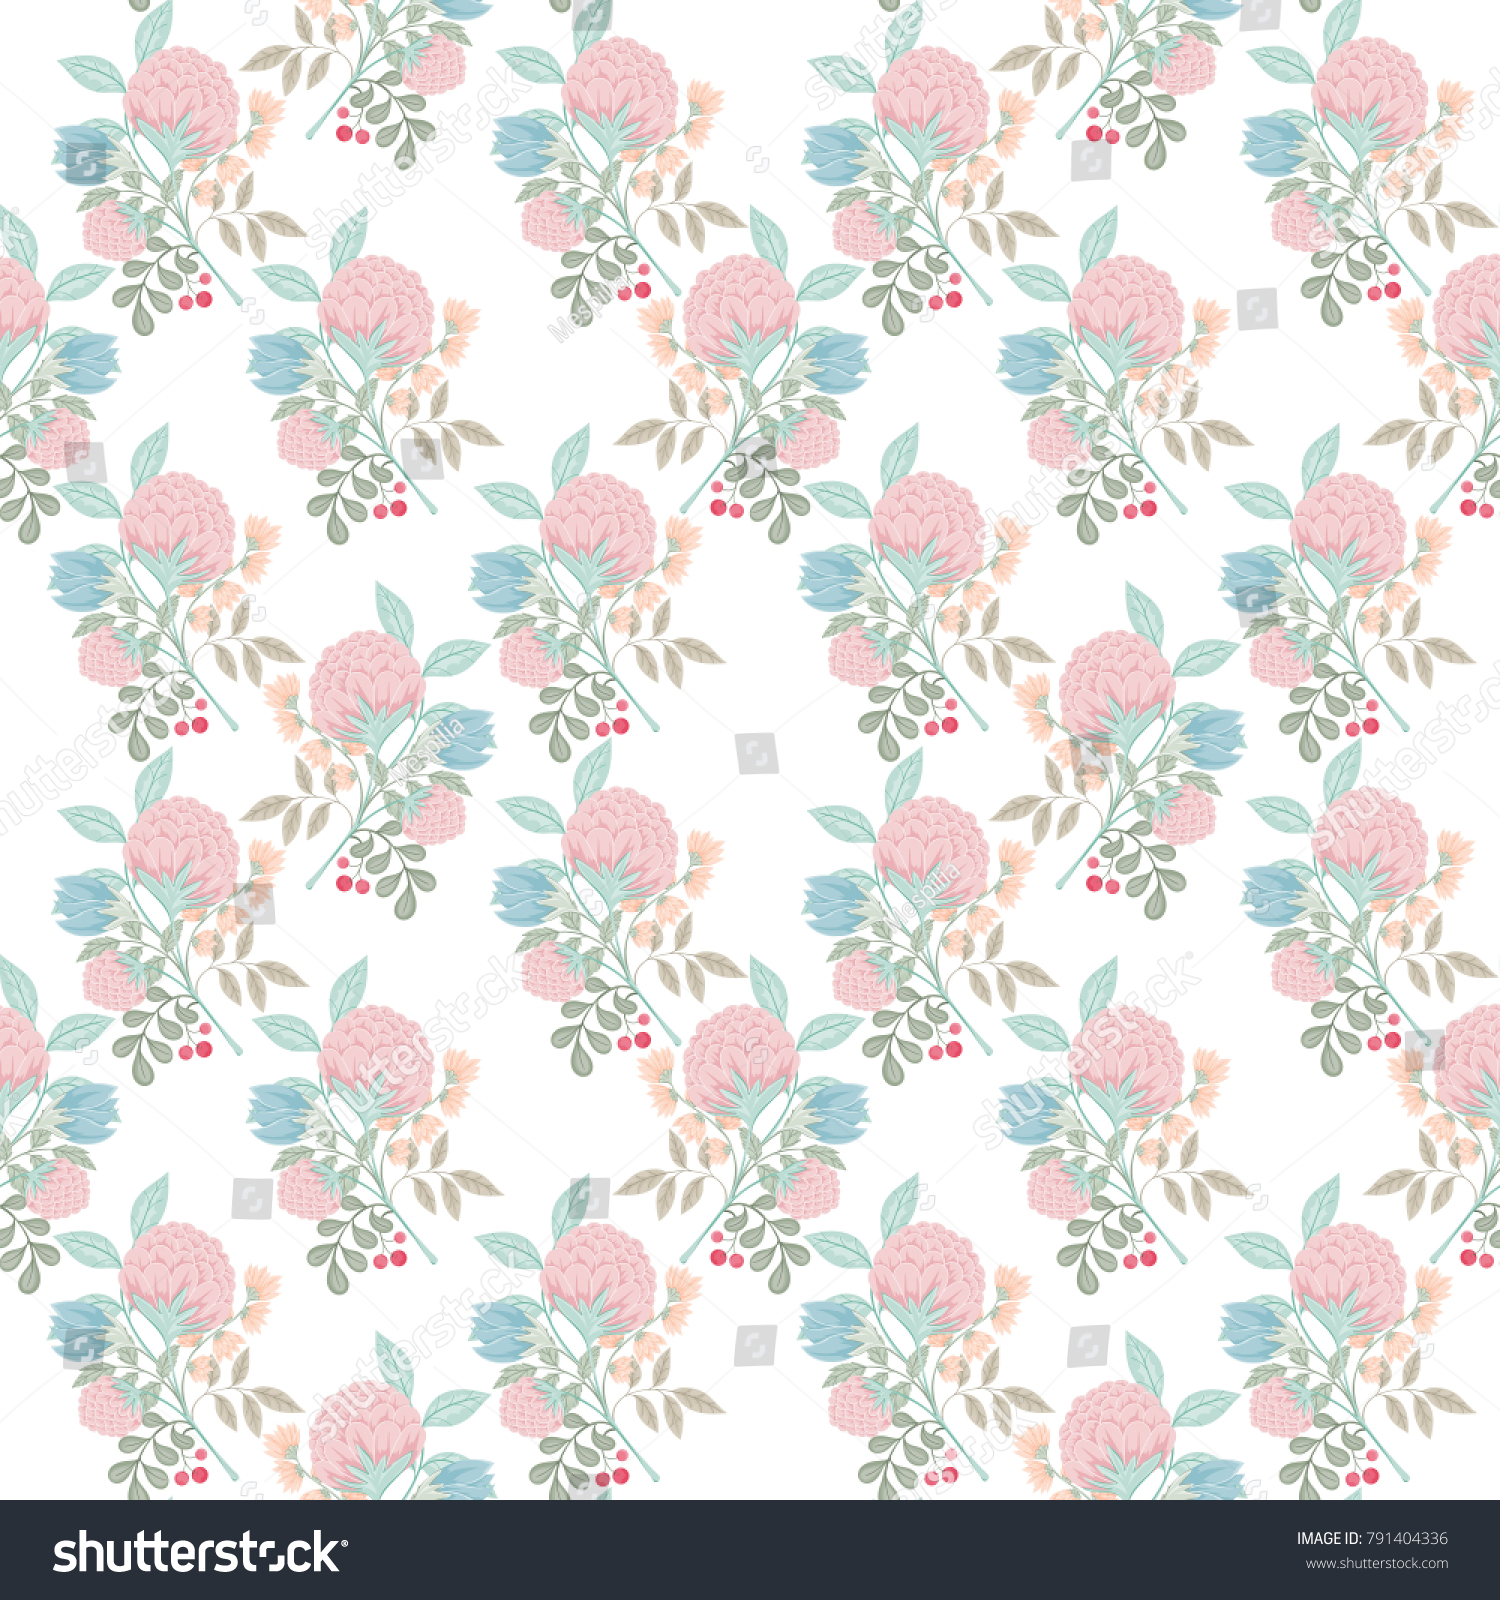 Spring Flower Seamless Pattern Wallpaper Website Stock Vector ... for Light Background Patterns For Websites  75sfw